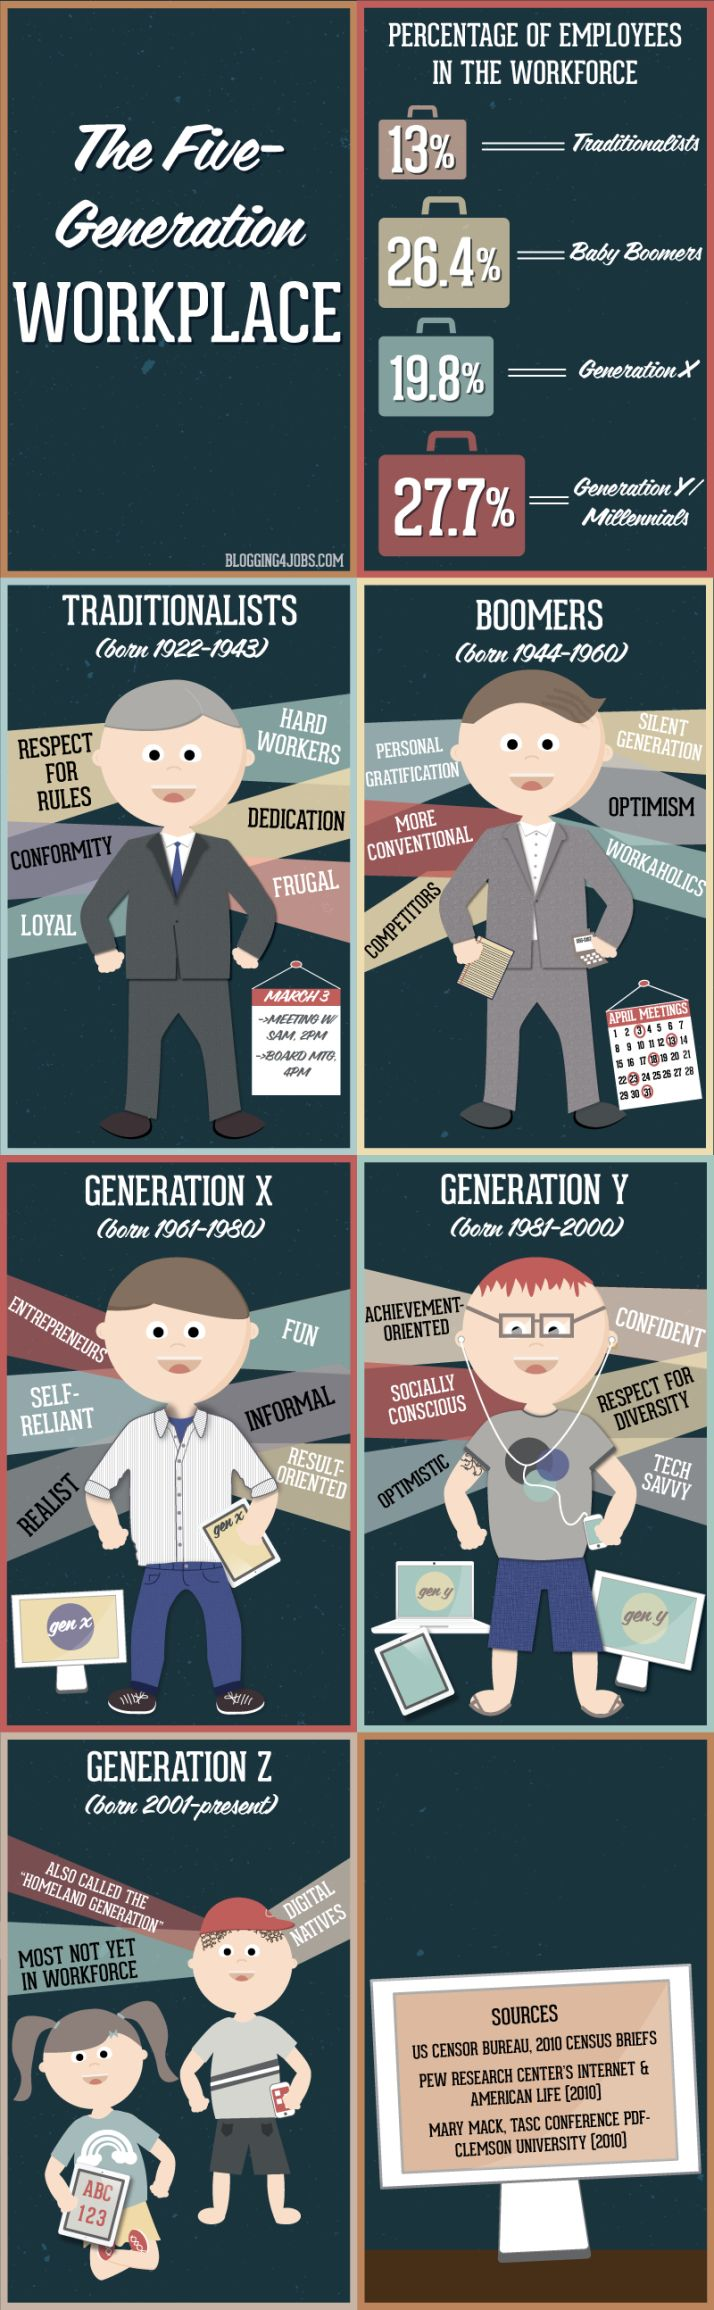 5 generations in the workplace. Are you #Marketing to them? www.socialmediamamma.com